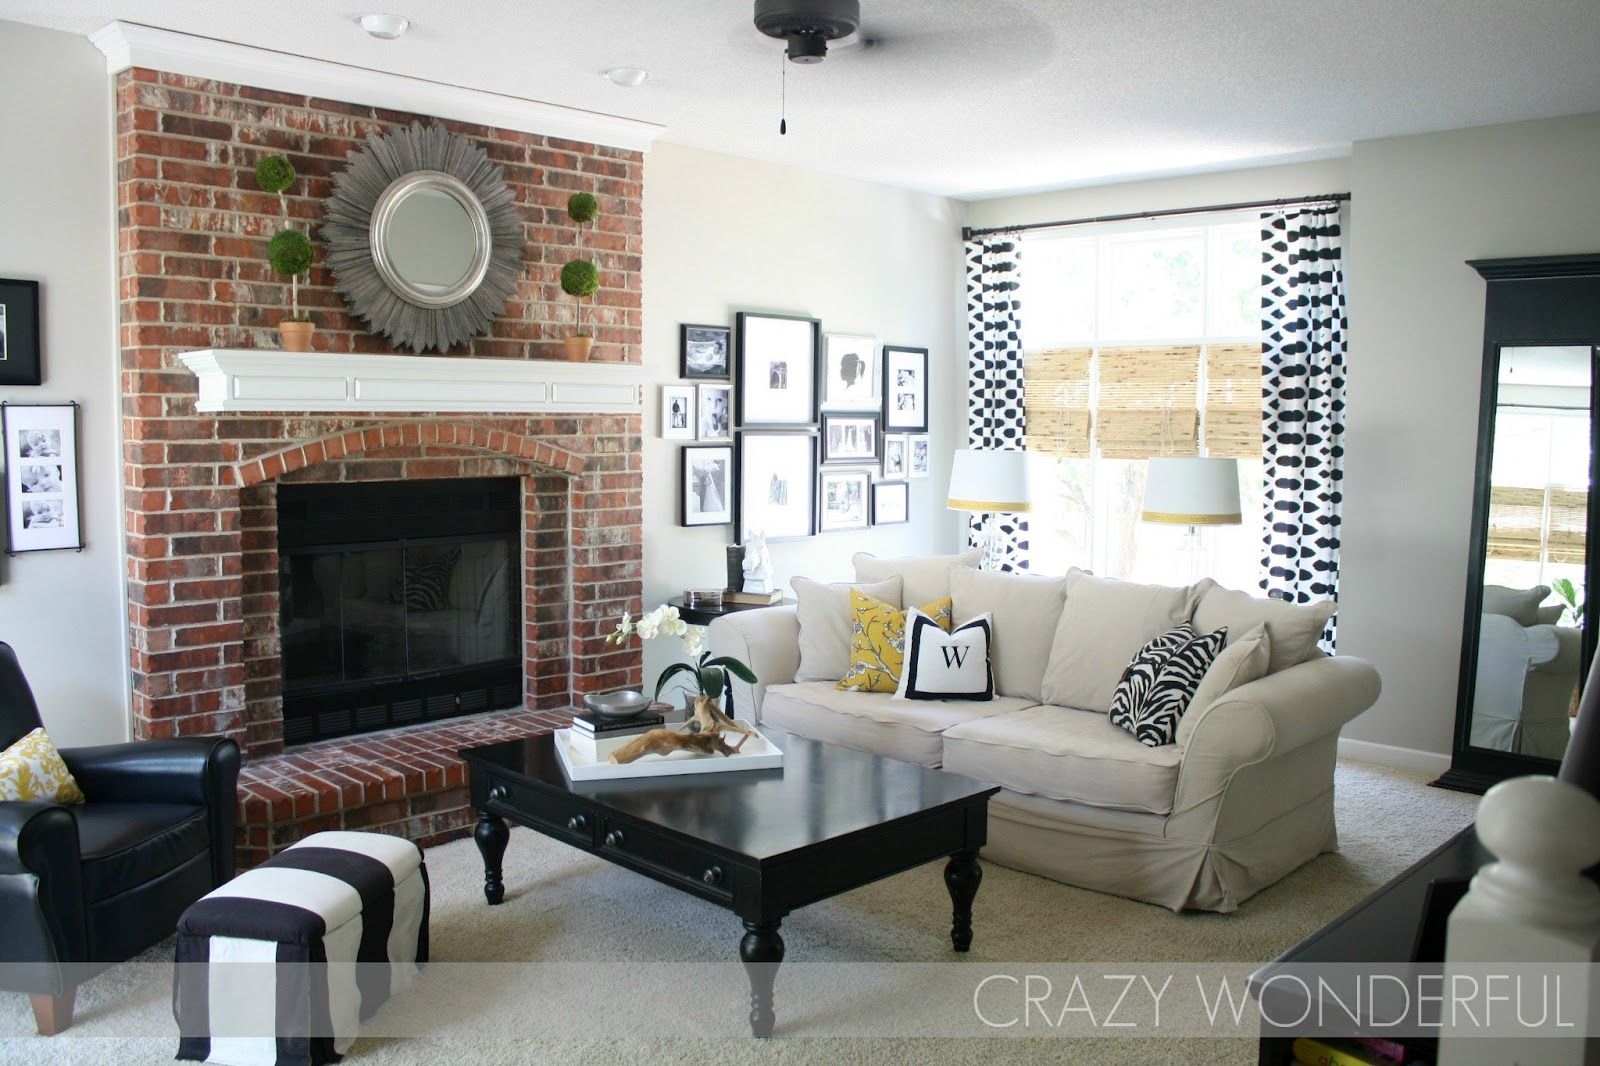 Greige Paint Whites Blacks And Real Brick Fireplace Perfect